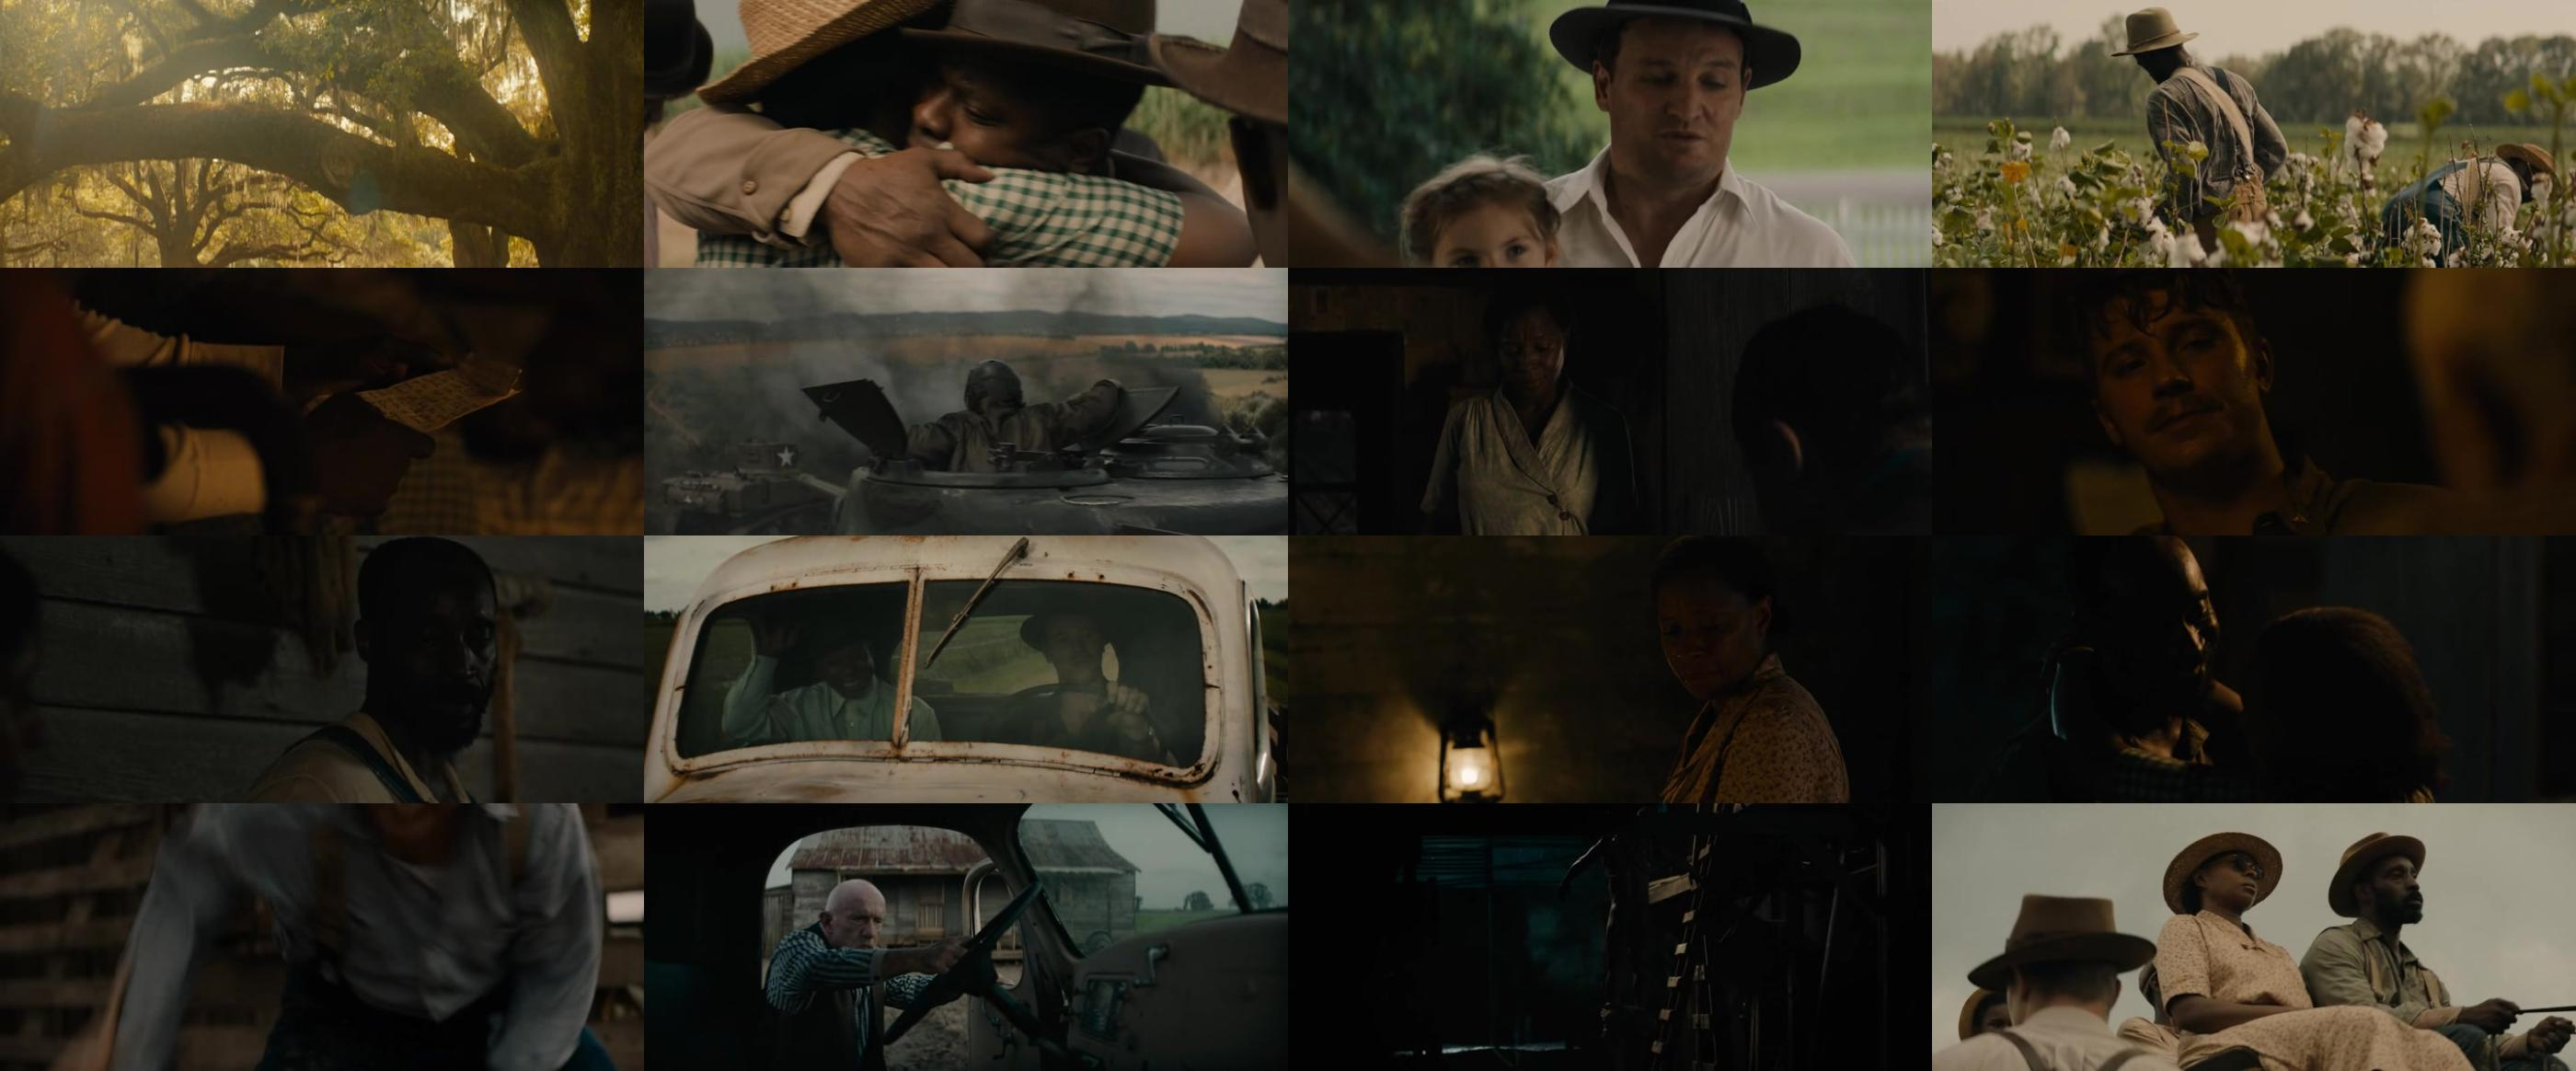 [Bild: 120571168_mudbound-2017-webrip-xvid-mp3-xvid.jpg]